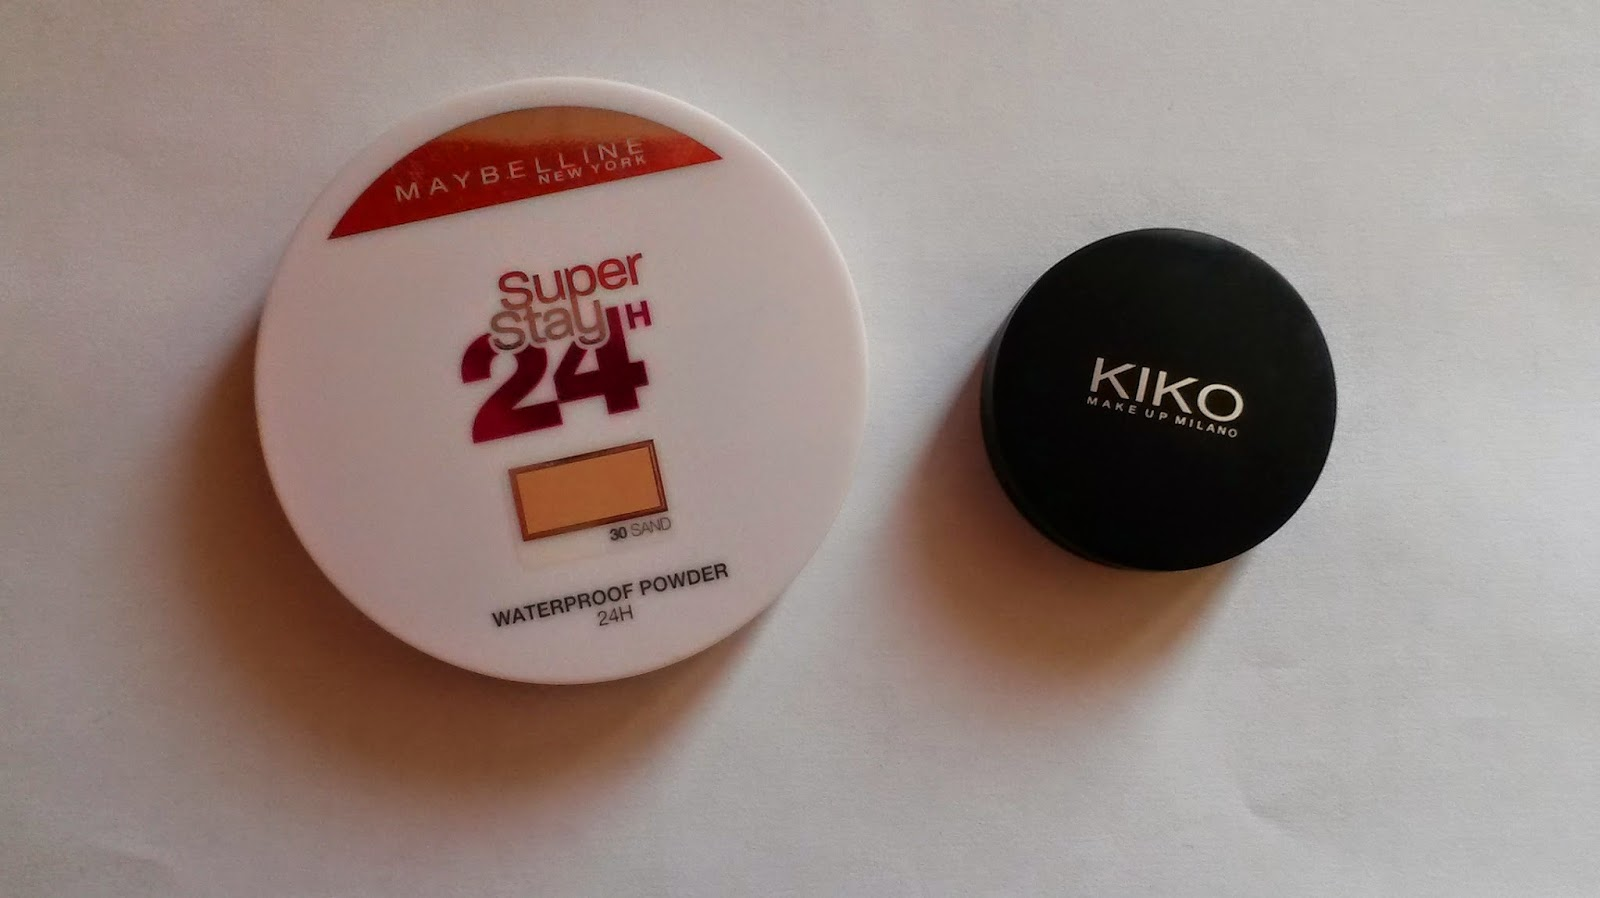 TAG Fall Favorite Things (Ce que je préfère en automne) poudre superstay 24h gemey maybelline full coverage kiko